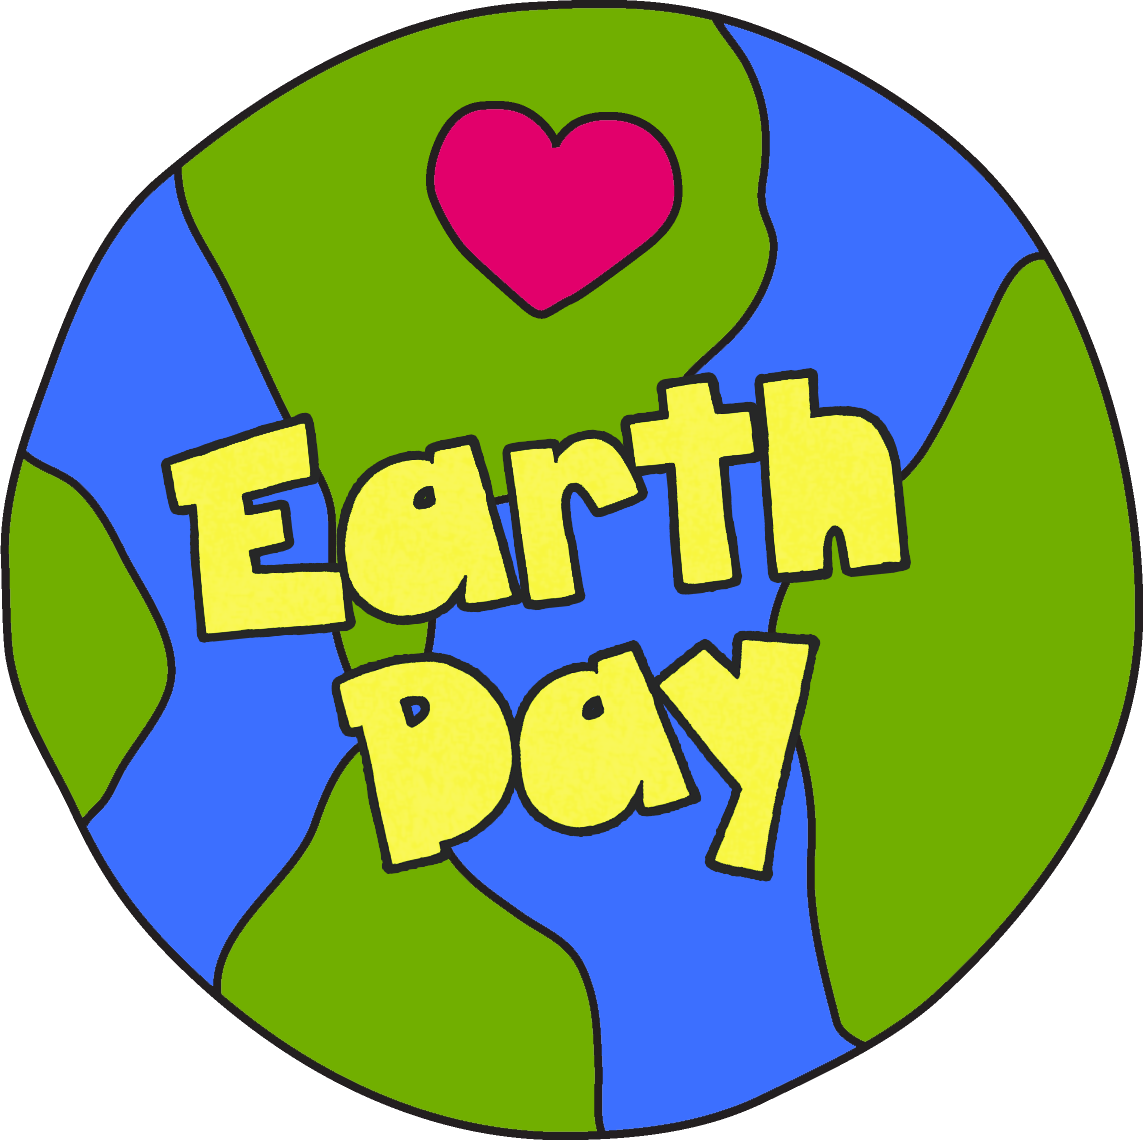 banner black and white 2013 clipart earth day. Math lit hooray stem